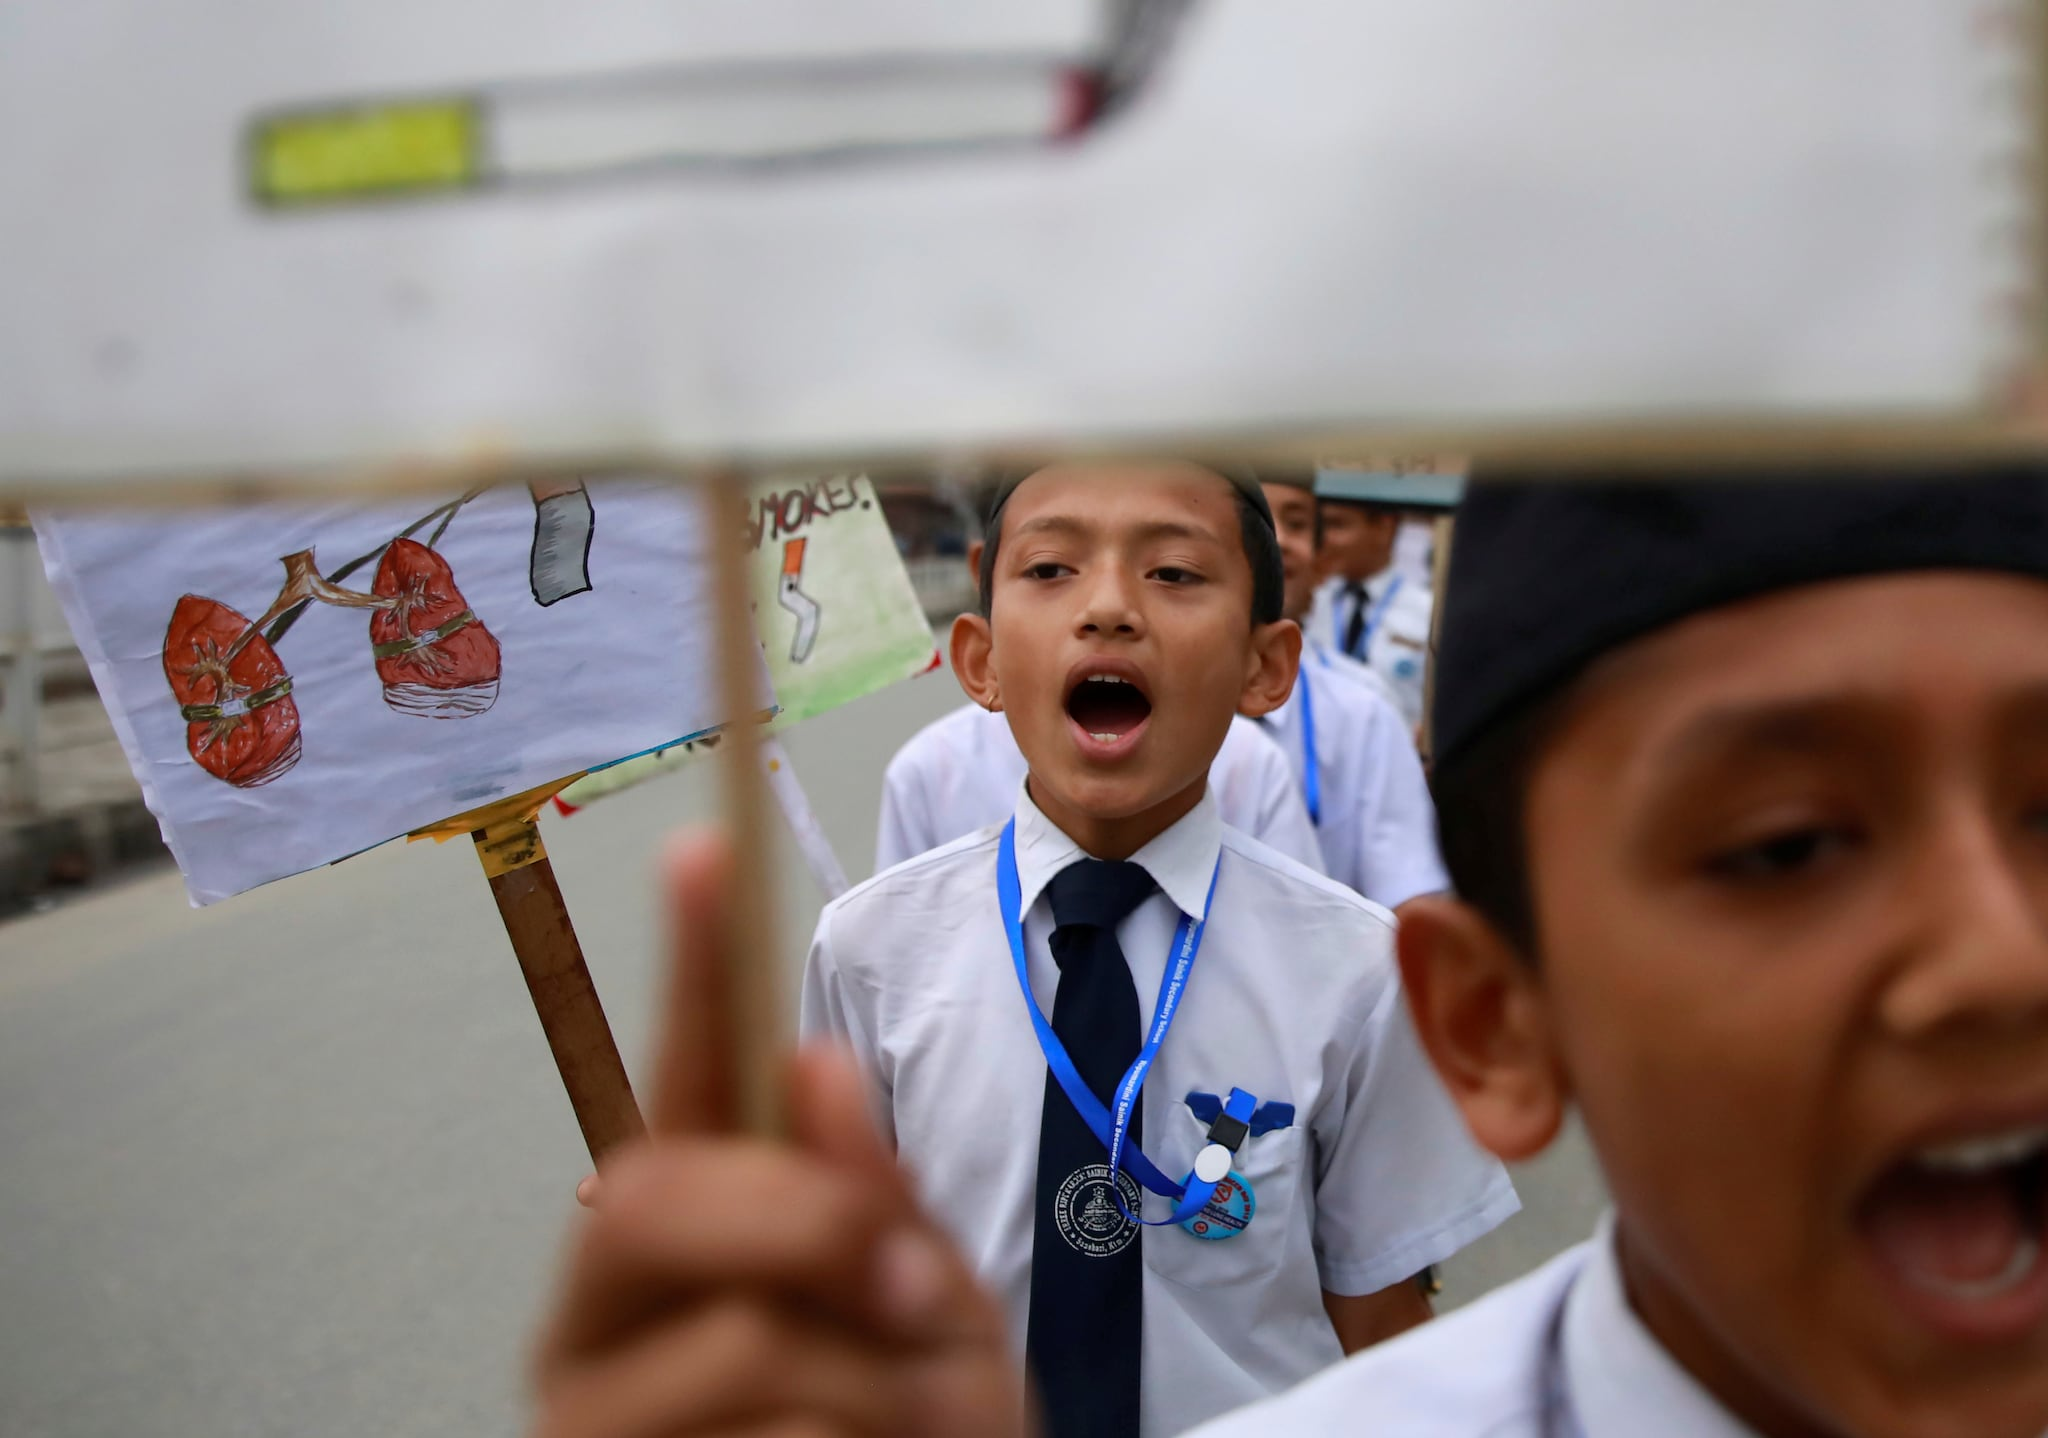 A teacher puts a badge on her student as they take part in a rally during the World No Tobacco Day in Kathmandu, Nepal May 31, 2019. REUTERS/Navesh Chitrakar